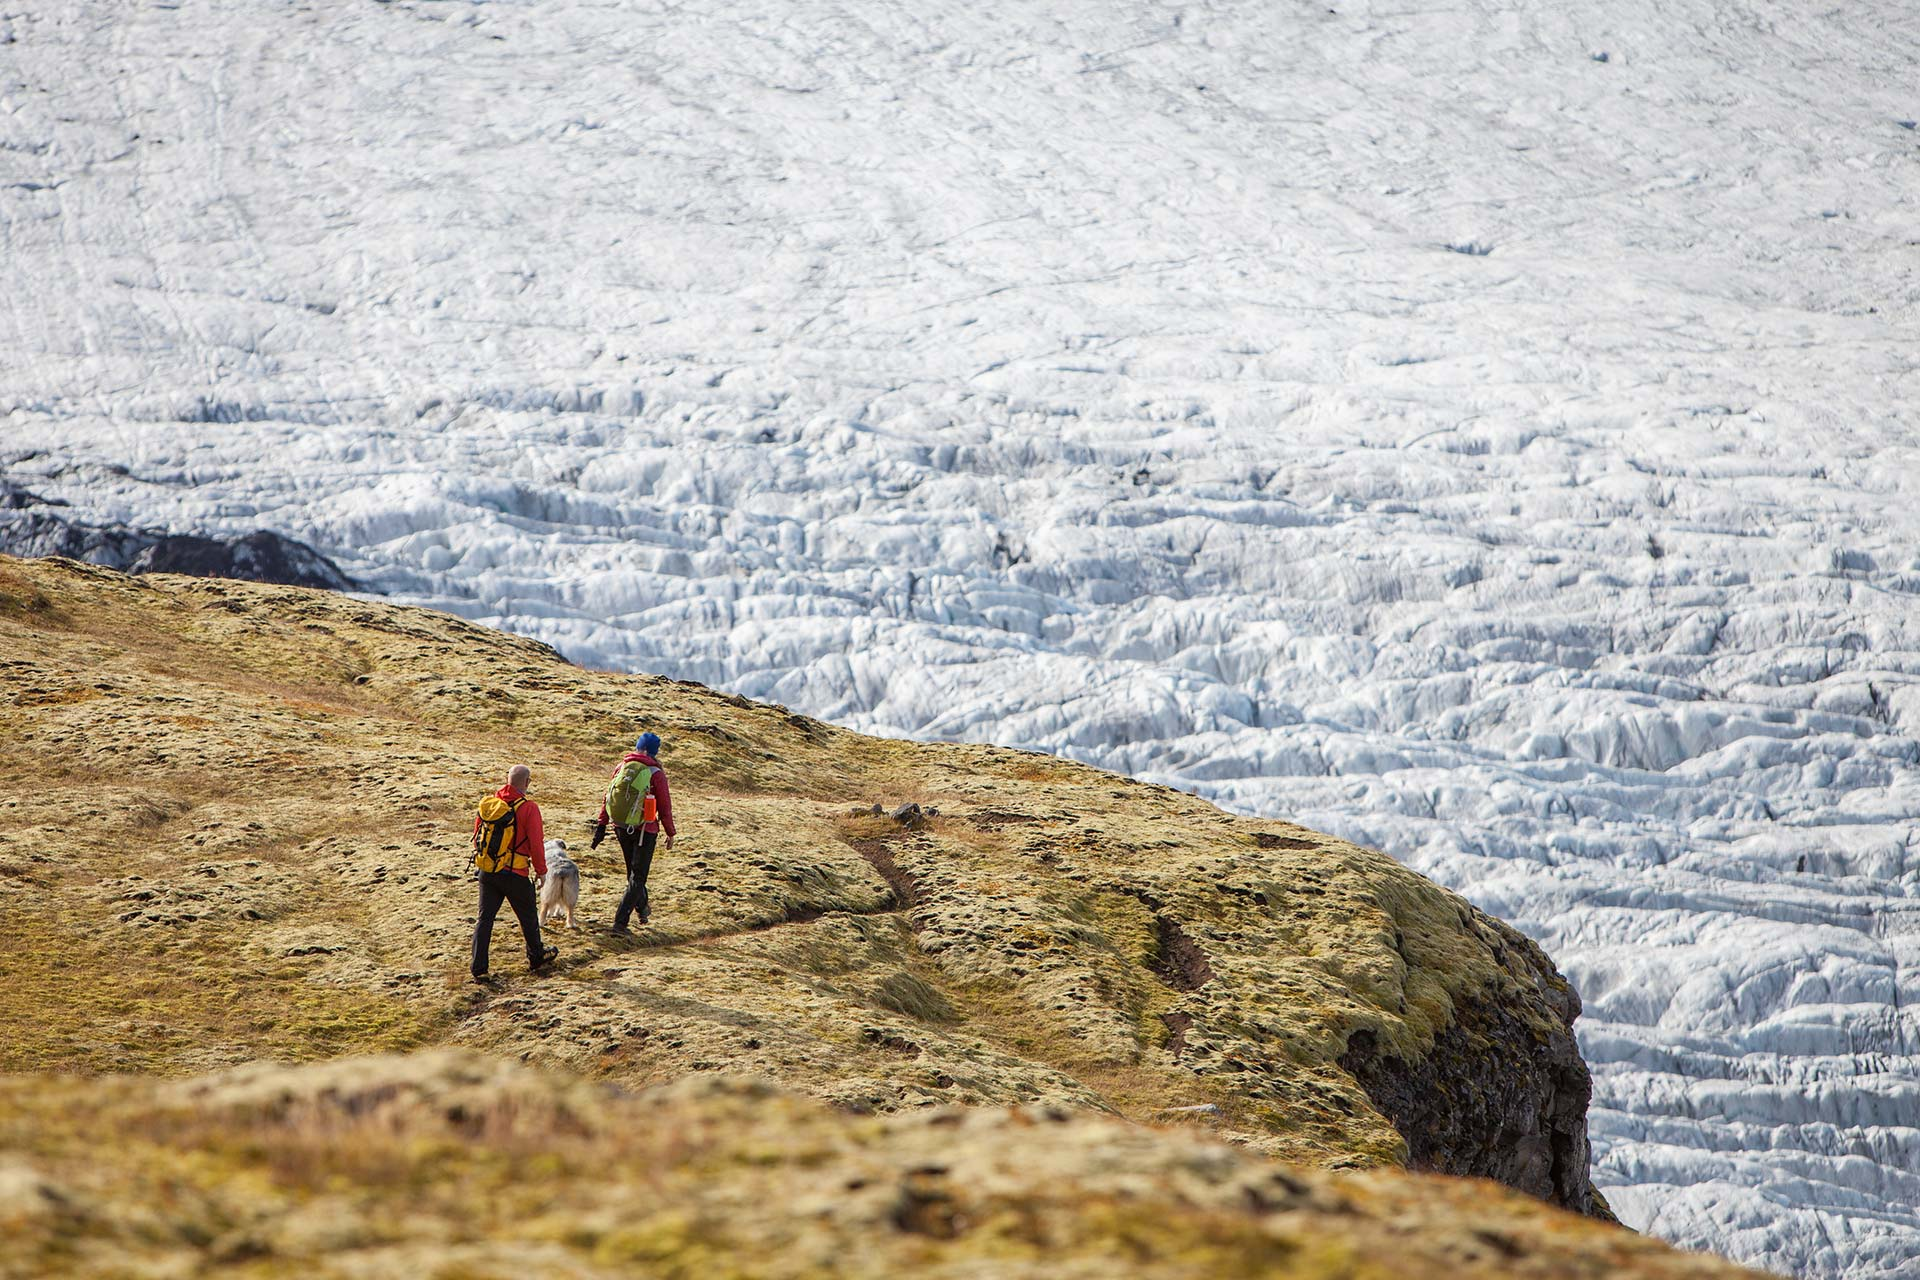 People on a hiking trail with views over a glacier